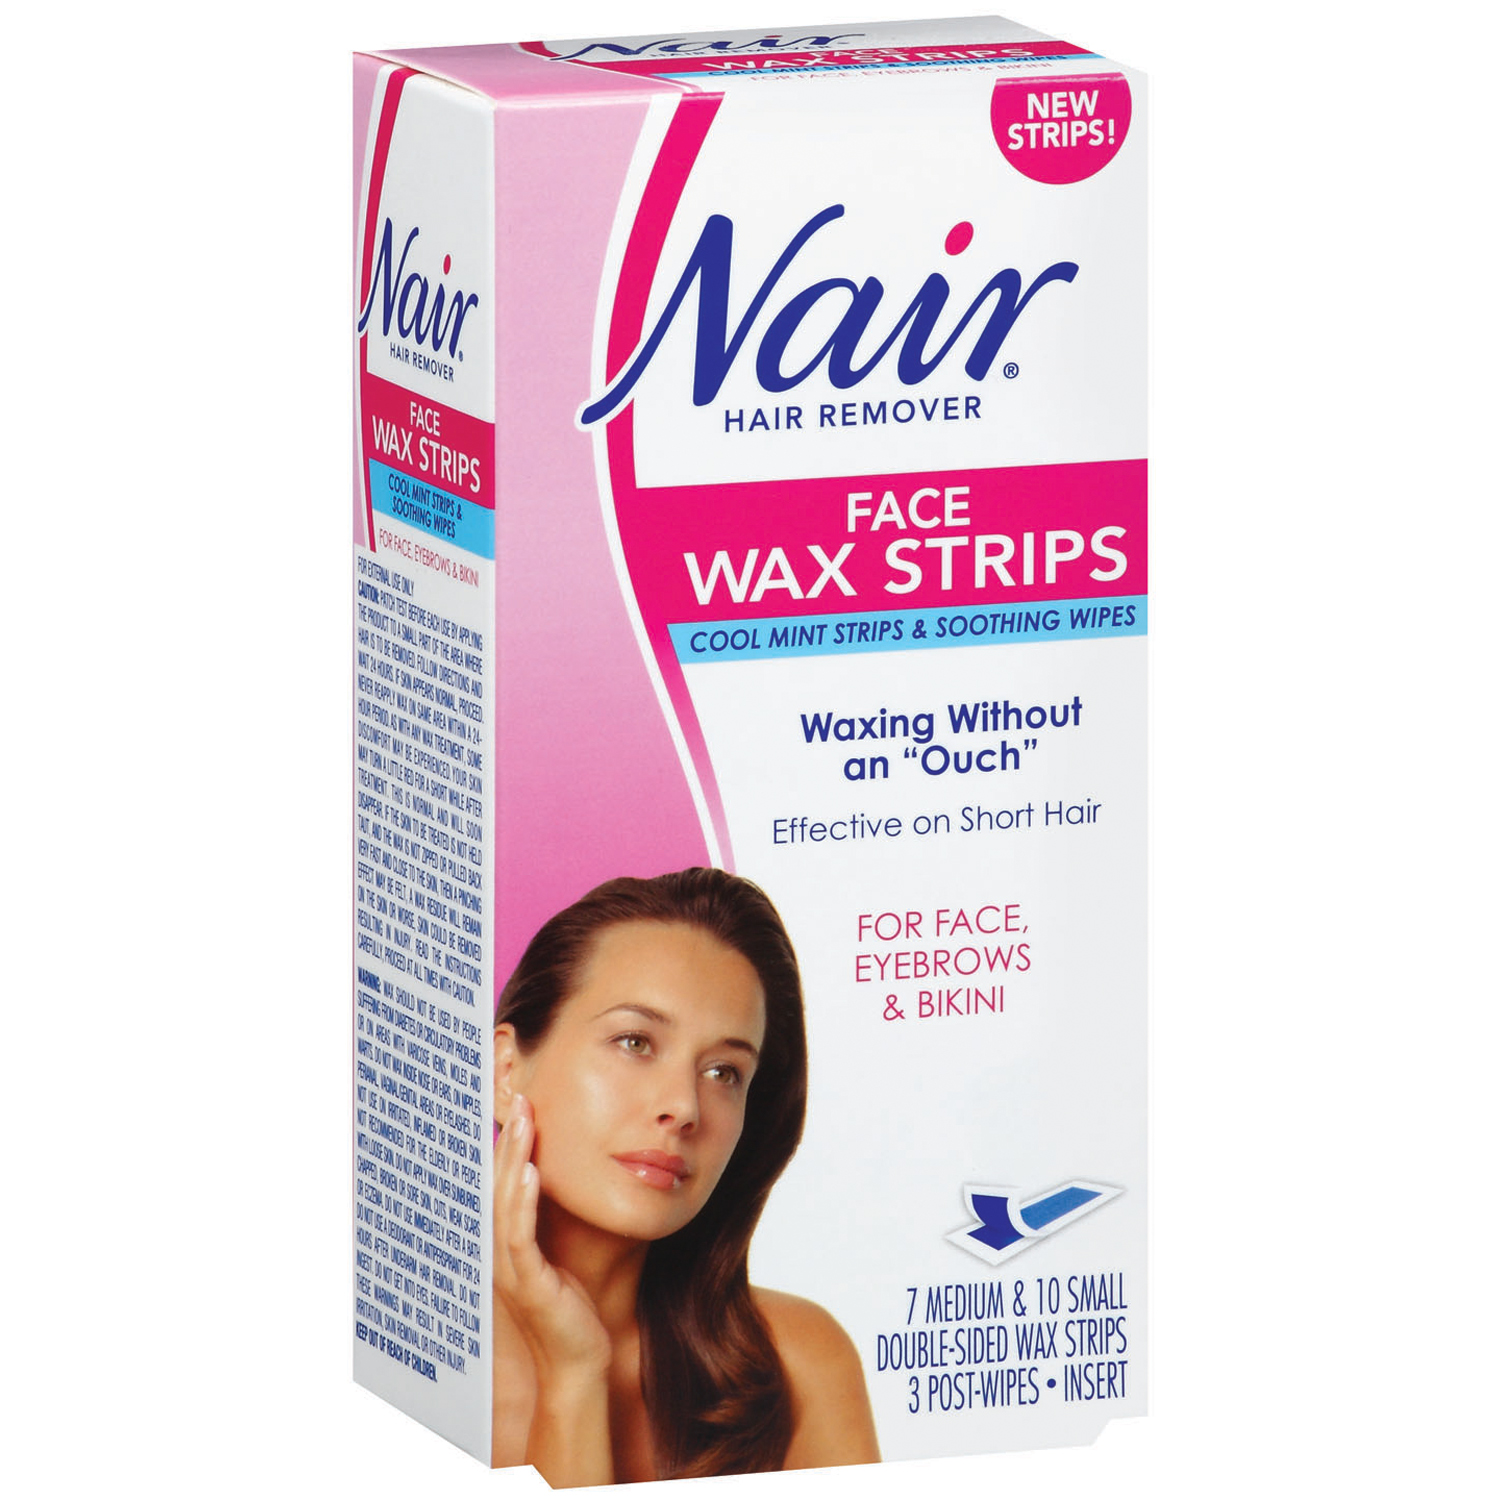 Nair Face Wax Strips Hair Remover 1 Box Walmart Com Walmart Com